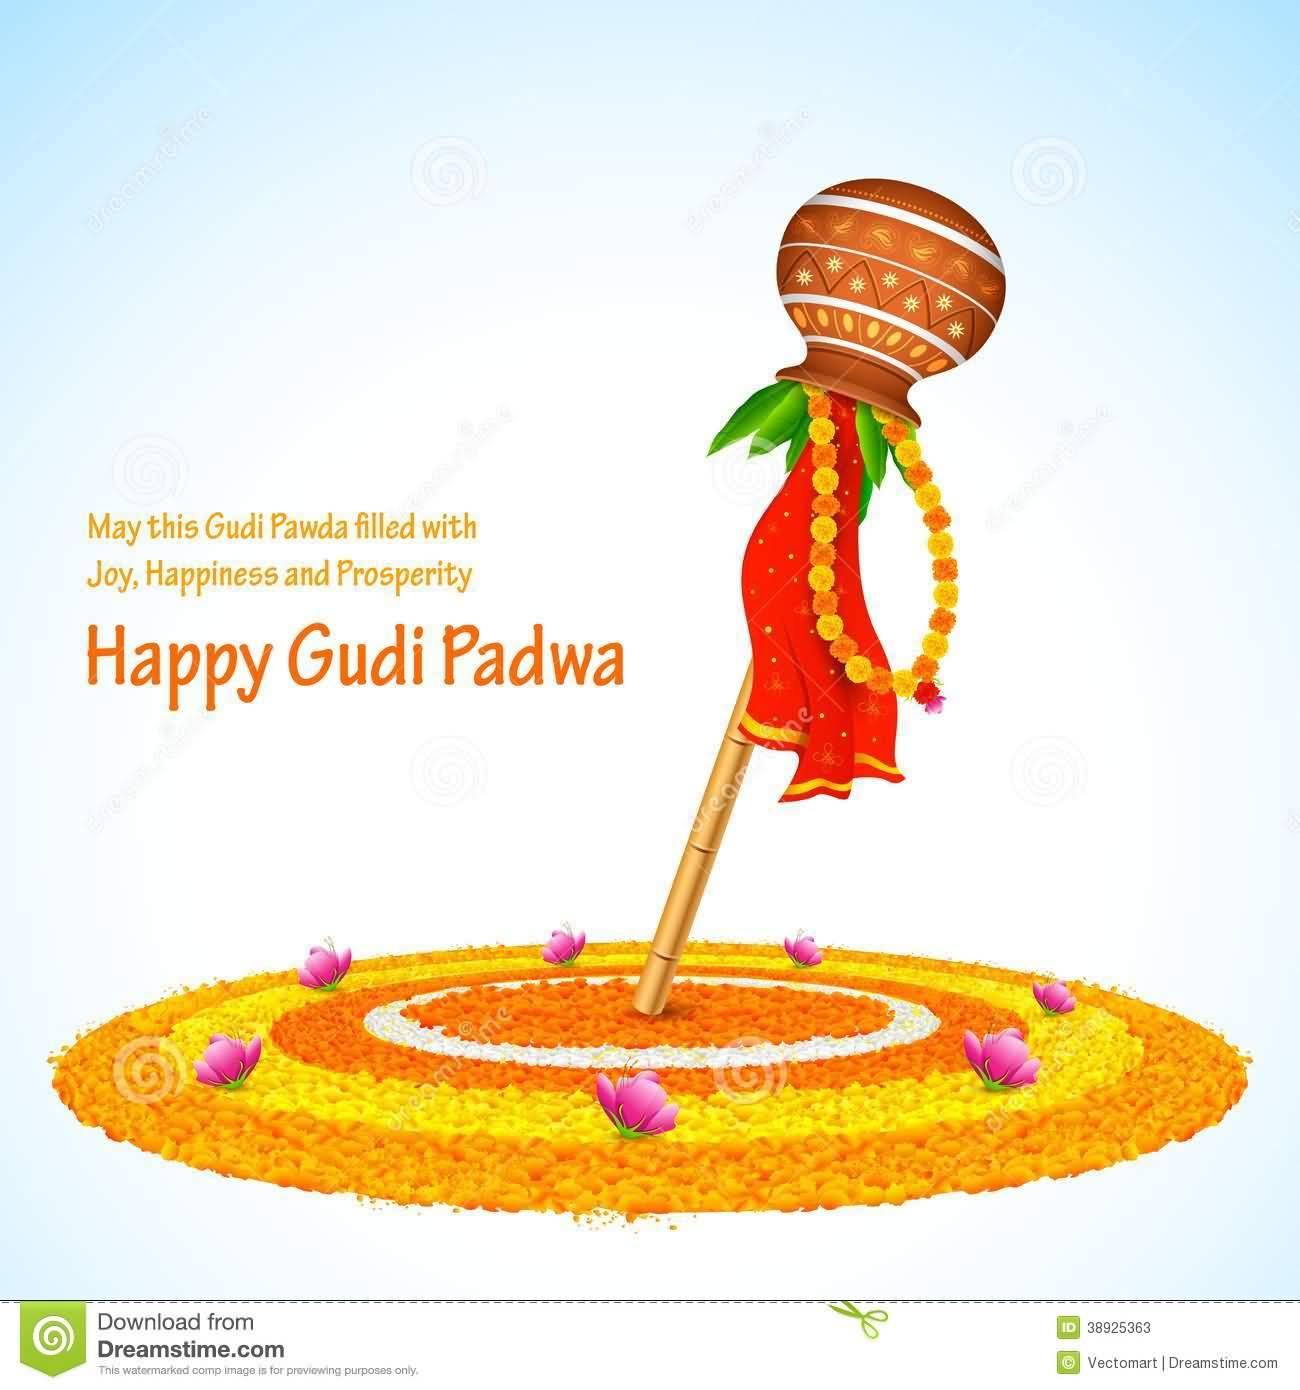 55 Best Gudi Padwa 2017 Wish Pictures And Photos